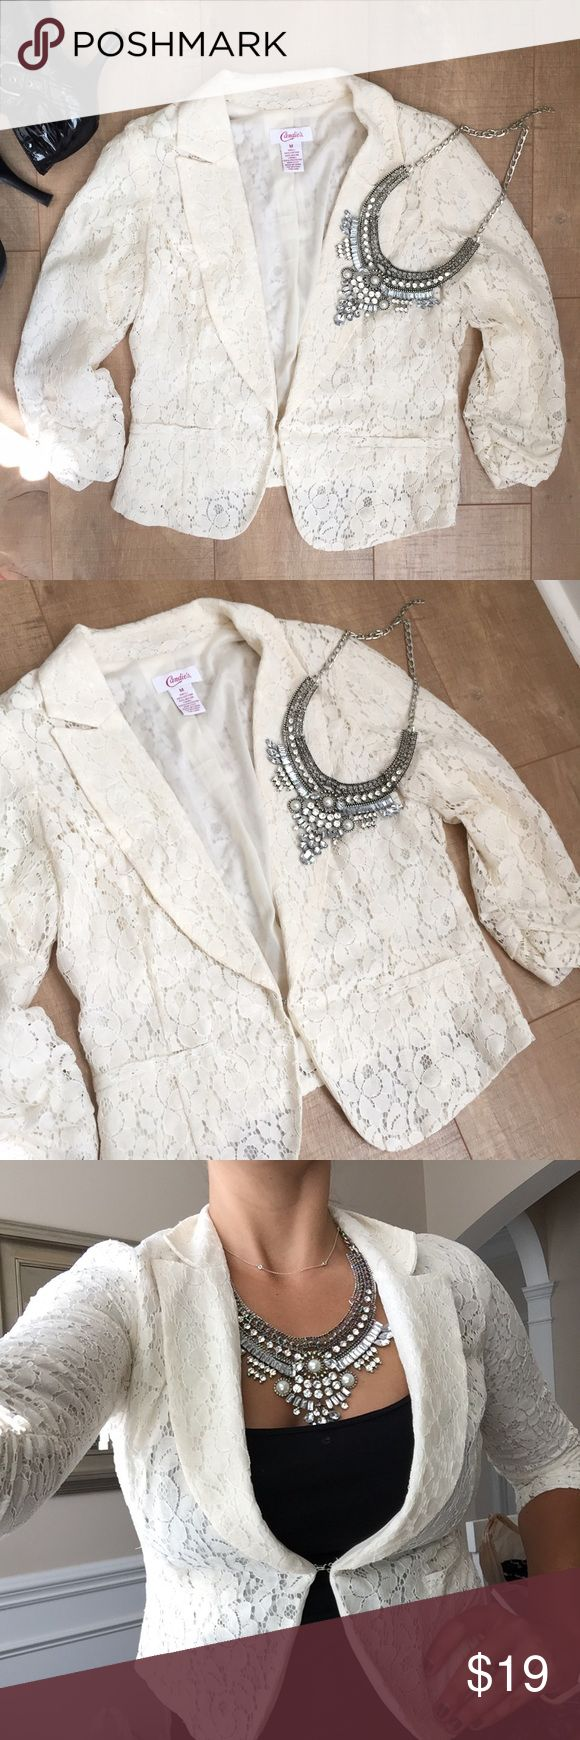 Lace Blazer Off-white cream lace blazer. Hook closure at waist for a tailored, slimming effect. Ruched sleeves, super chic & classic! Great condition, worn once. Candie's Jackets & Coats Blazers